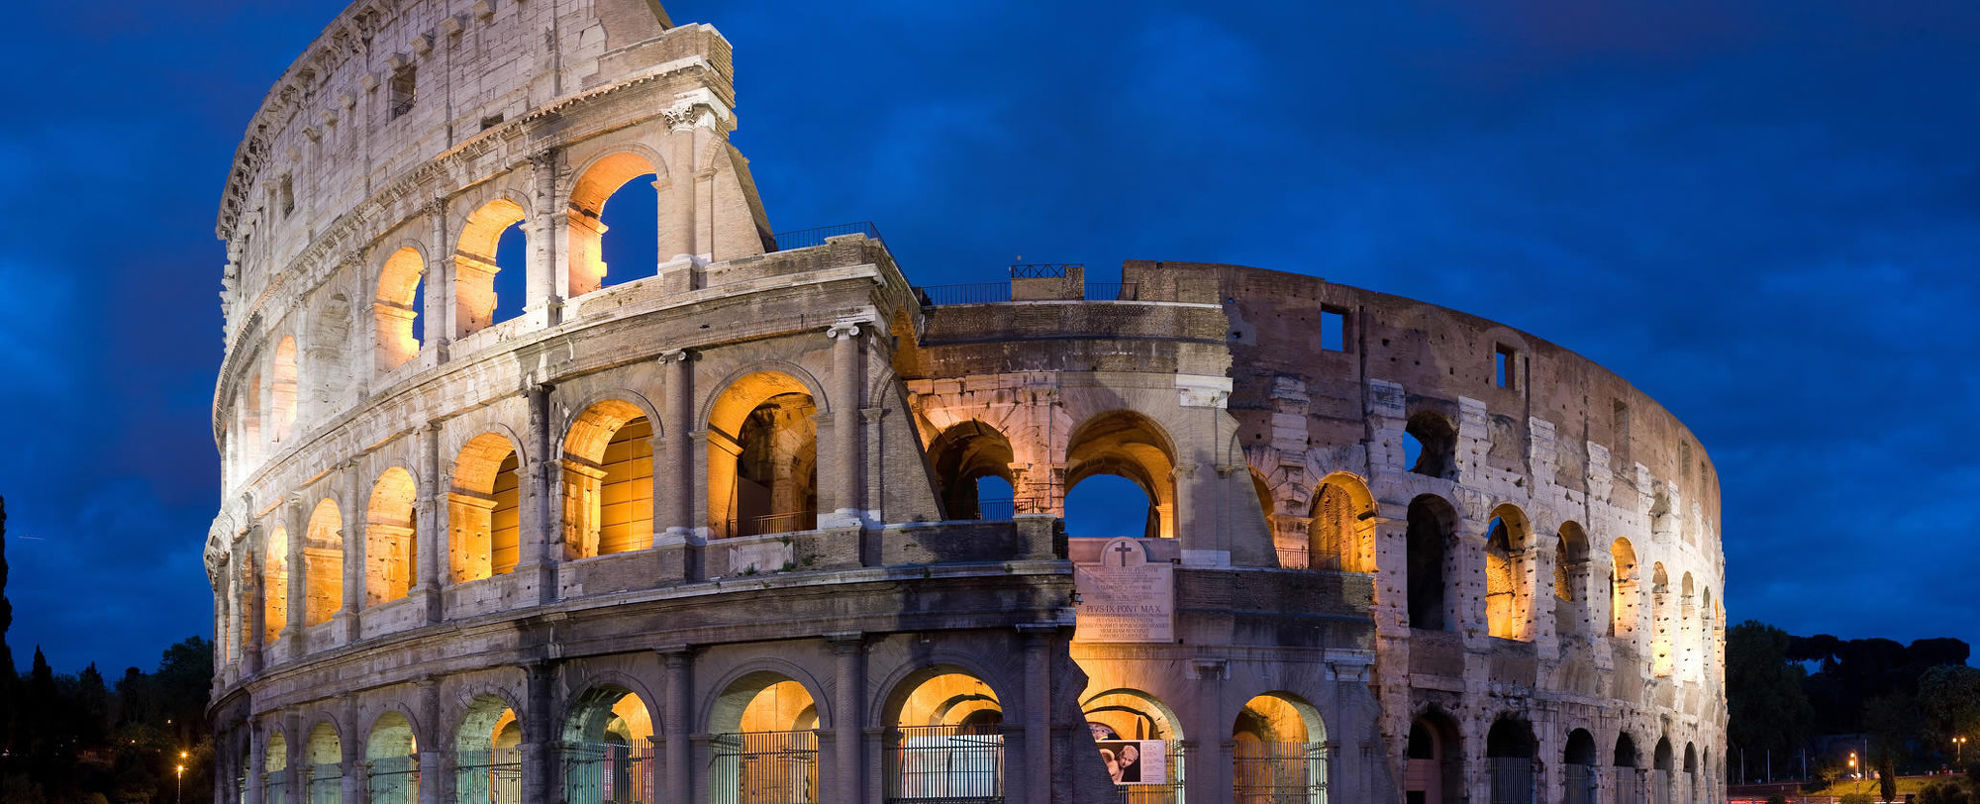 Explore The Colosseum